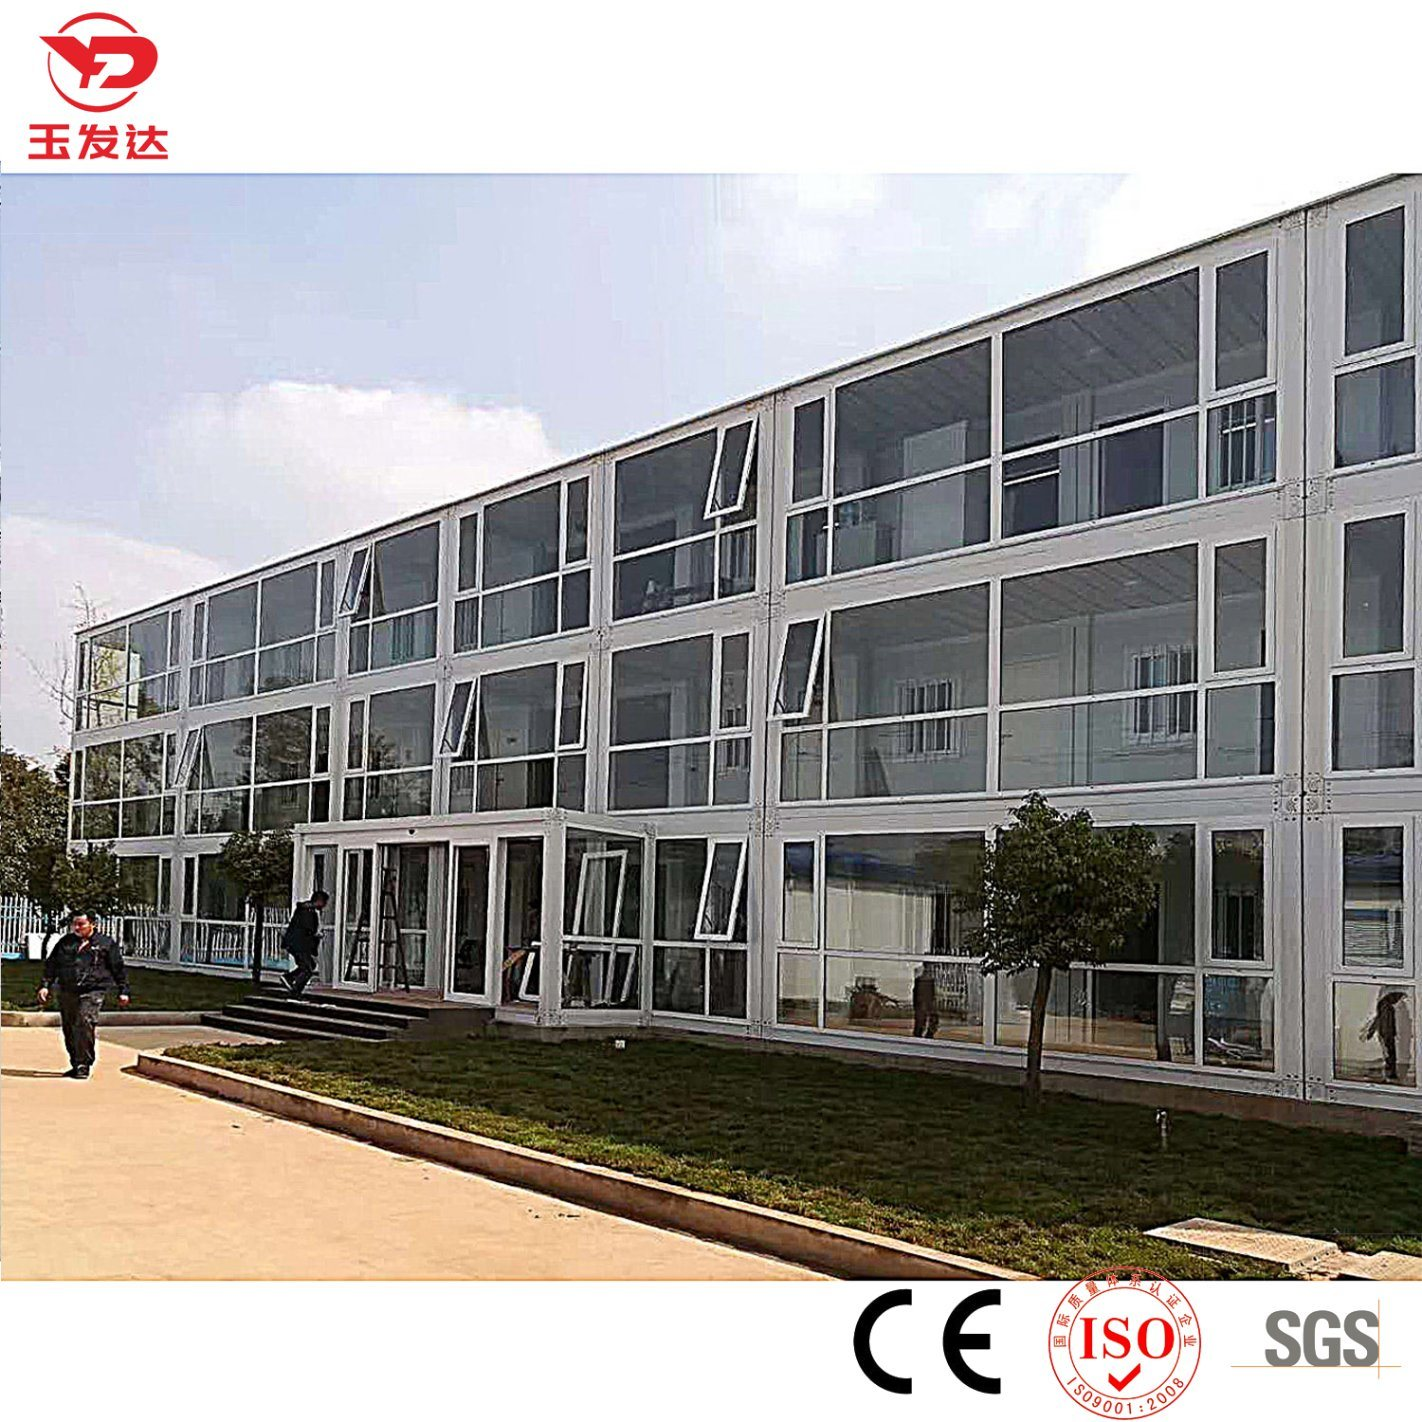 Ce Certificate Glass Wool Sandwich Modular Prefabricated Building Container House pictures & photos